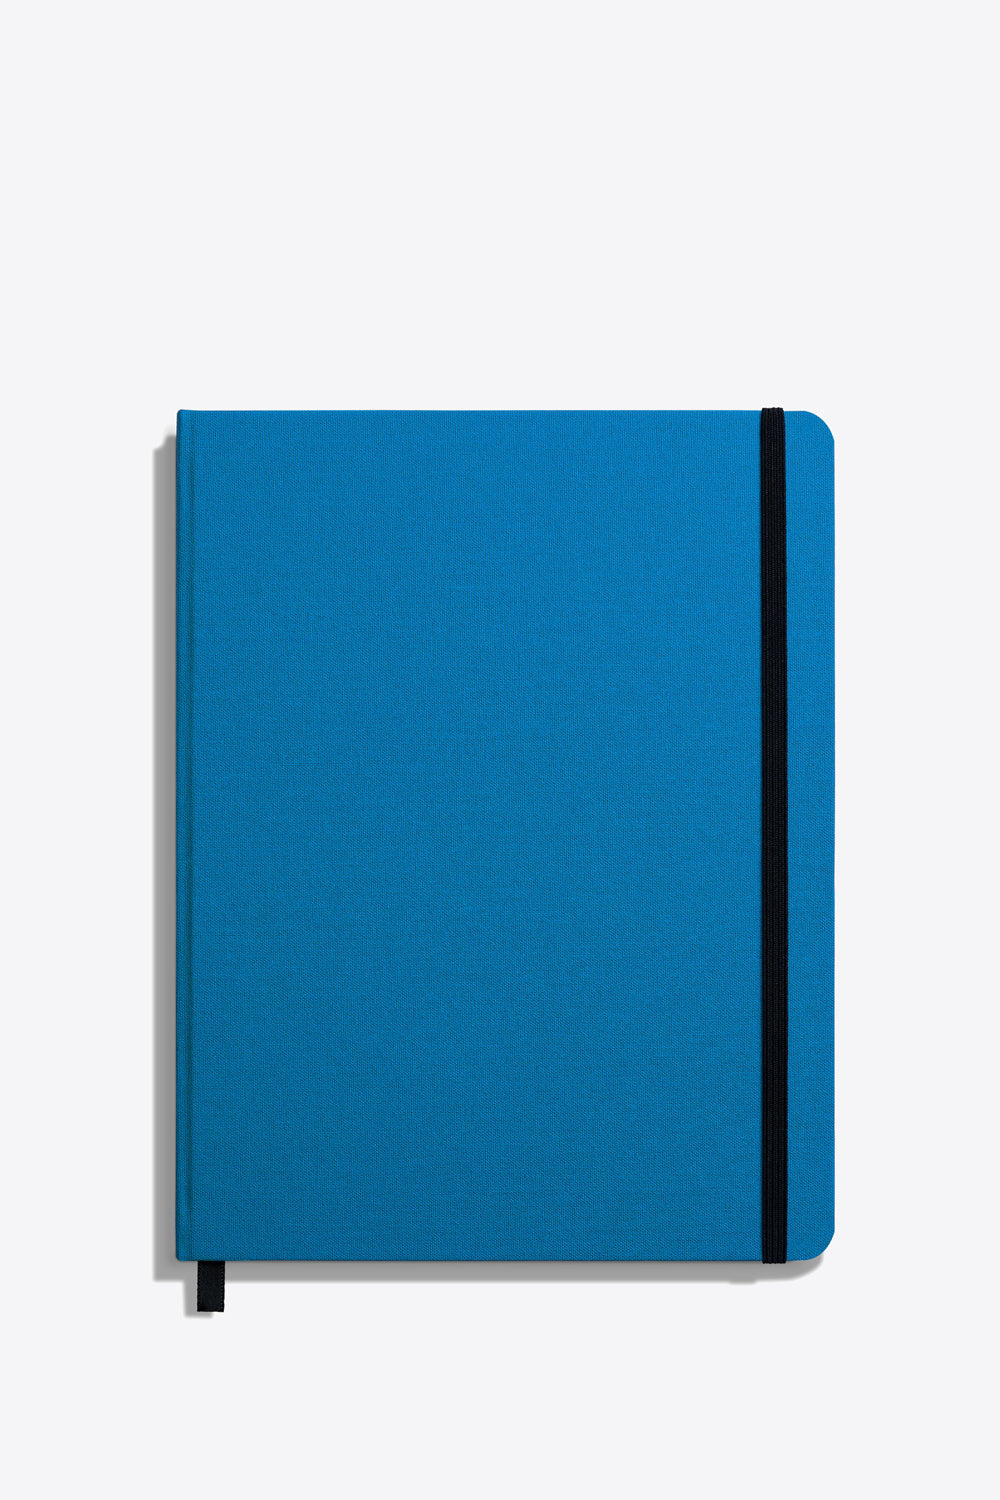 Large Hard Ruled Journal in Blue